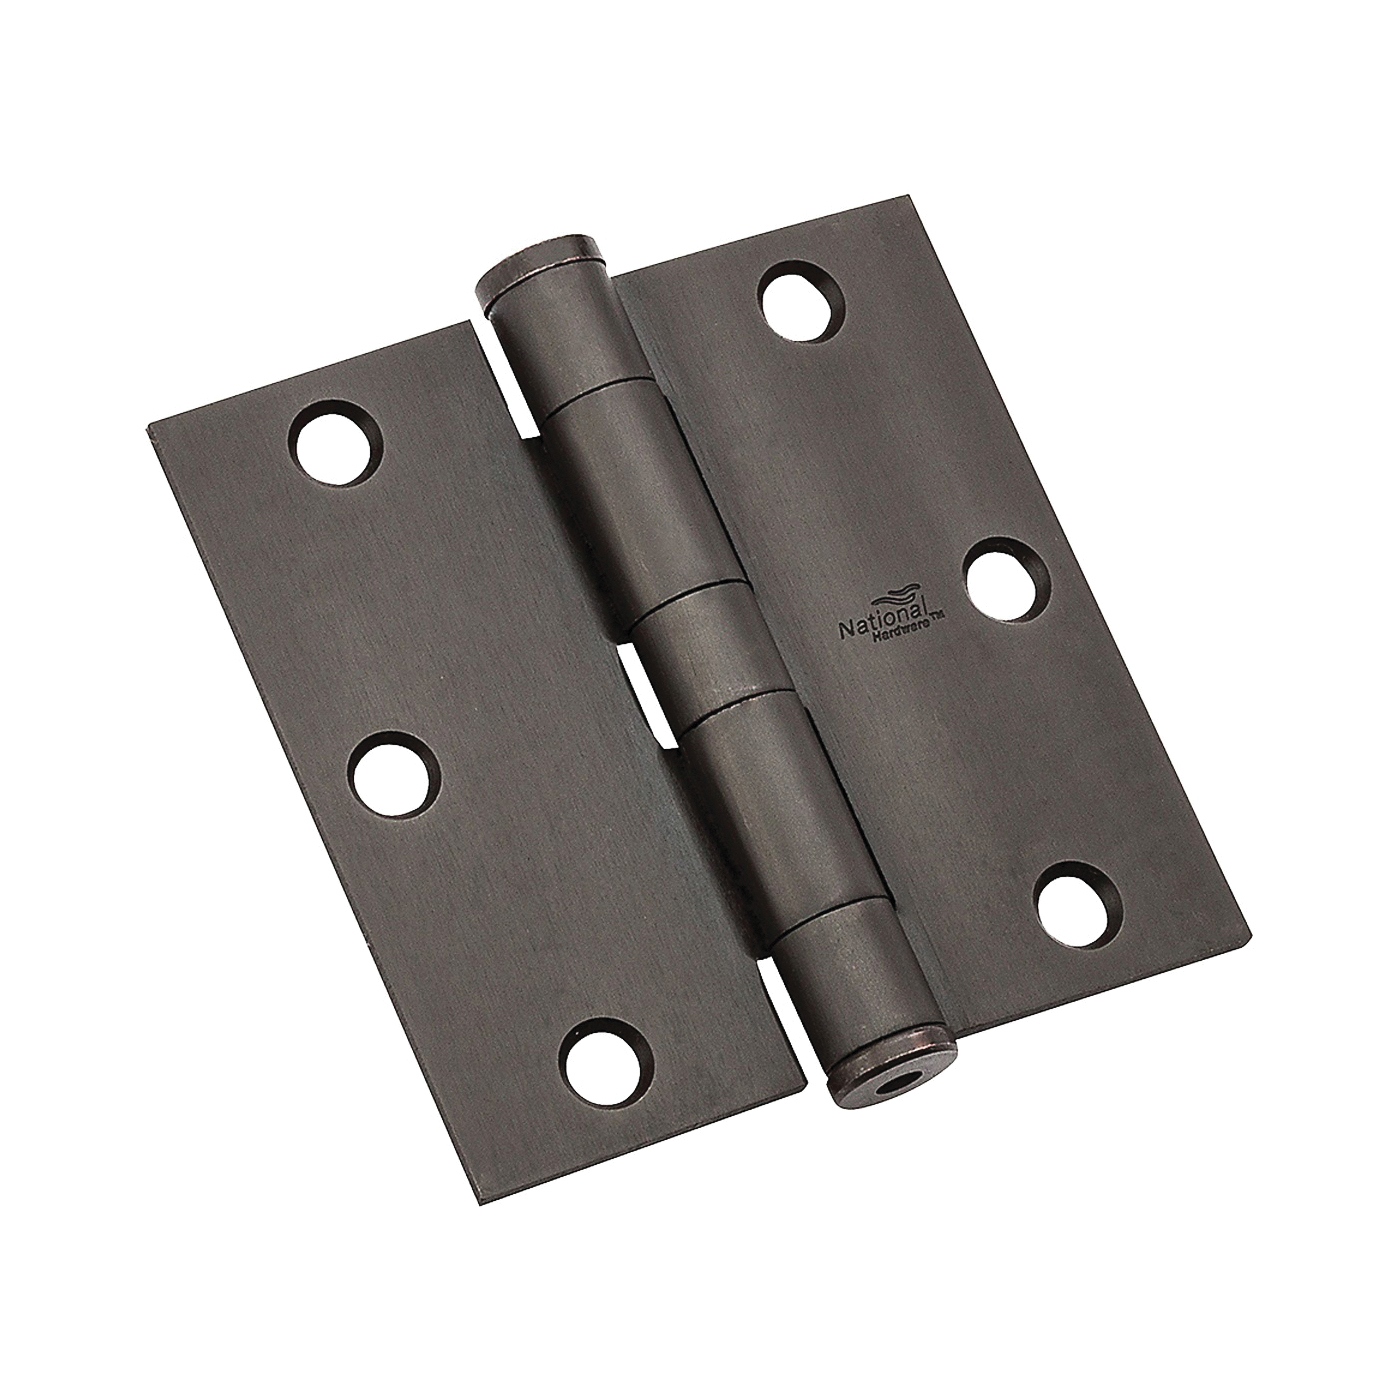 Picture of National Hardware 179 Series N236-112 Standard Weight Template Hinge, 3-1/2 in H Frame Leaf, Steel, Oil-Rubbed Bronze